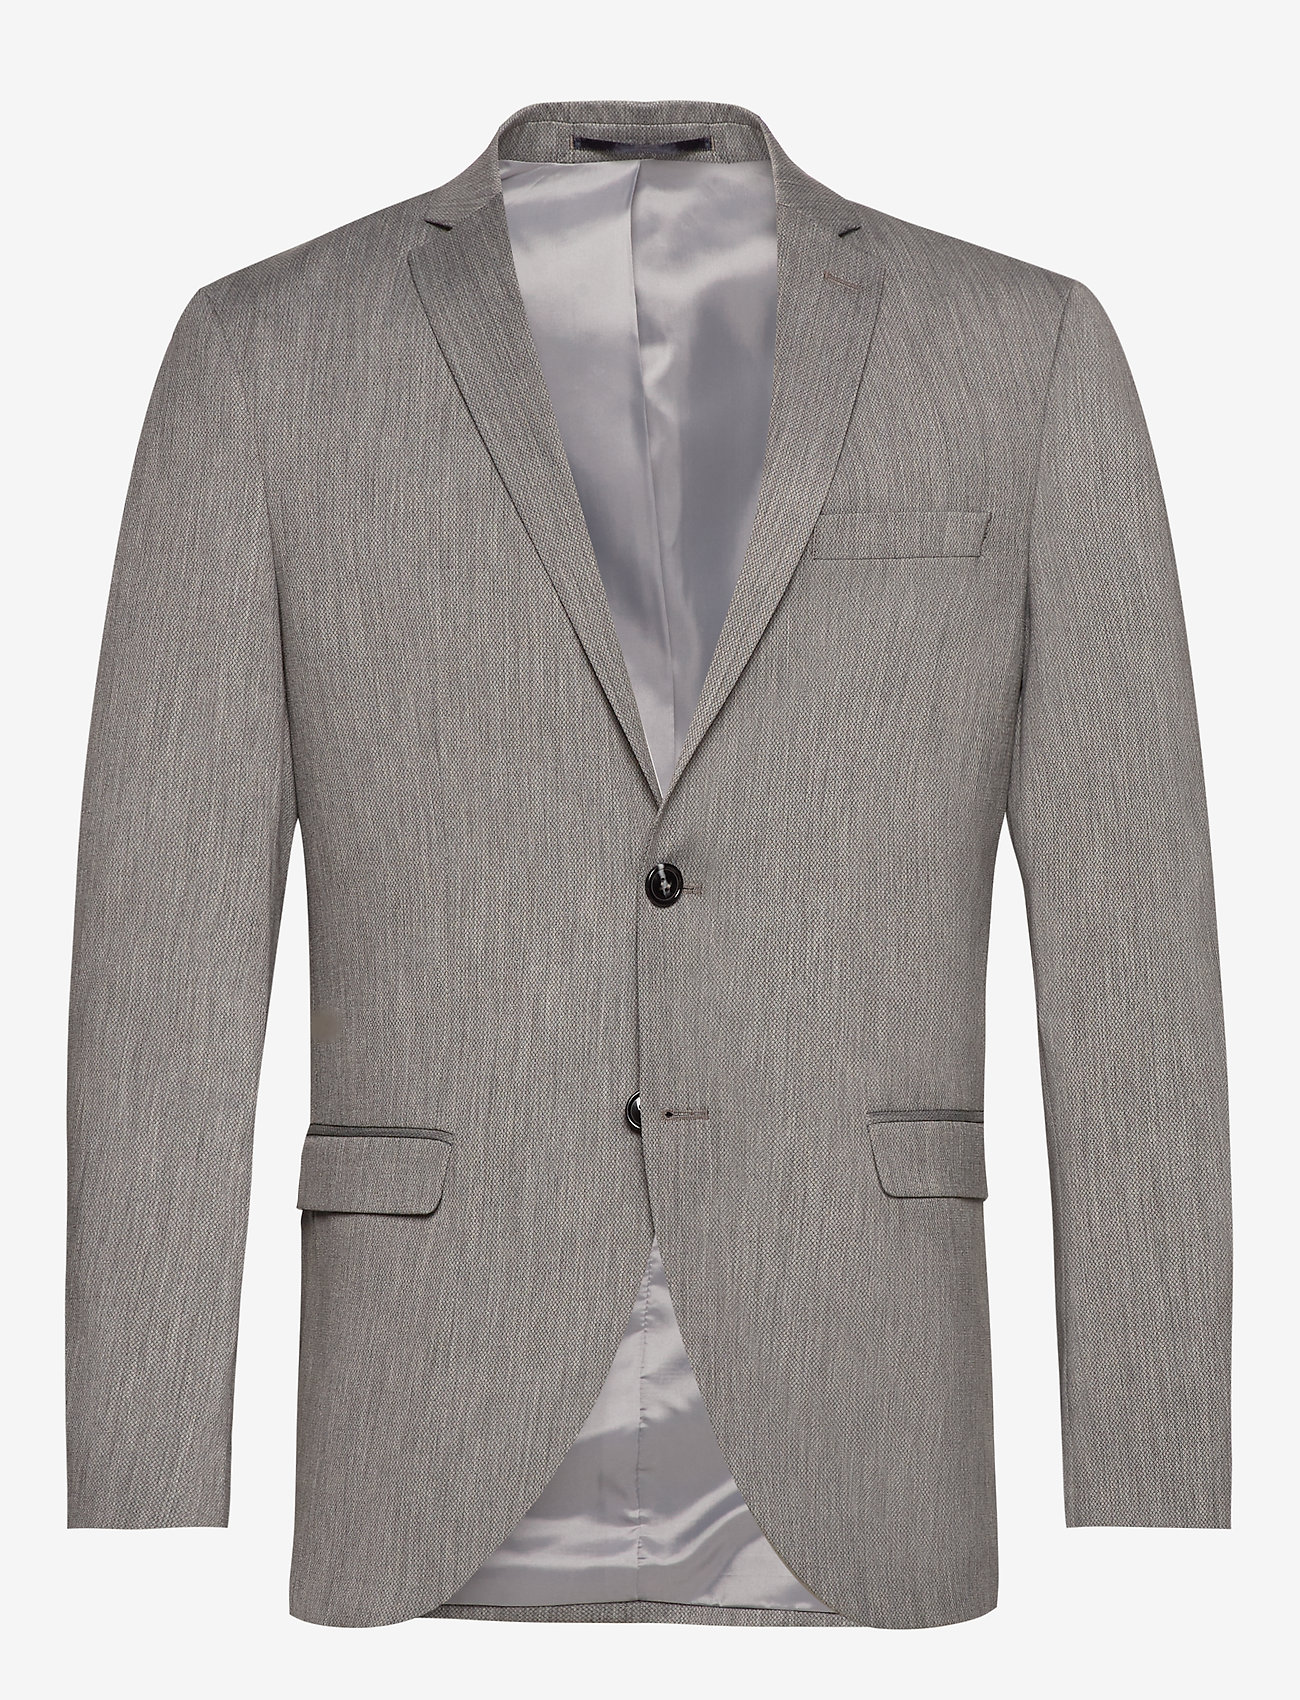 Selected Homme - SLHSLIM-MYLOBILL LT GREY STRC BLZ B NOOS - marynarki jednorzędowe - light grey melange - 0